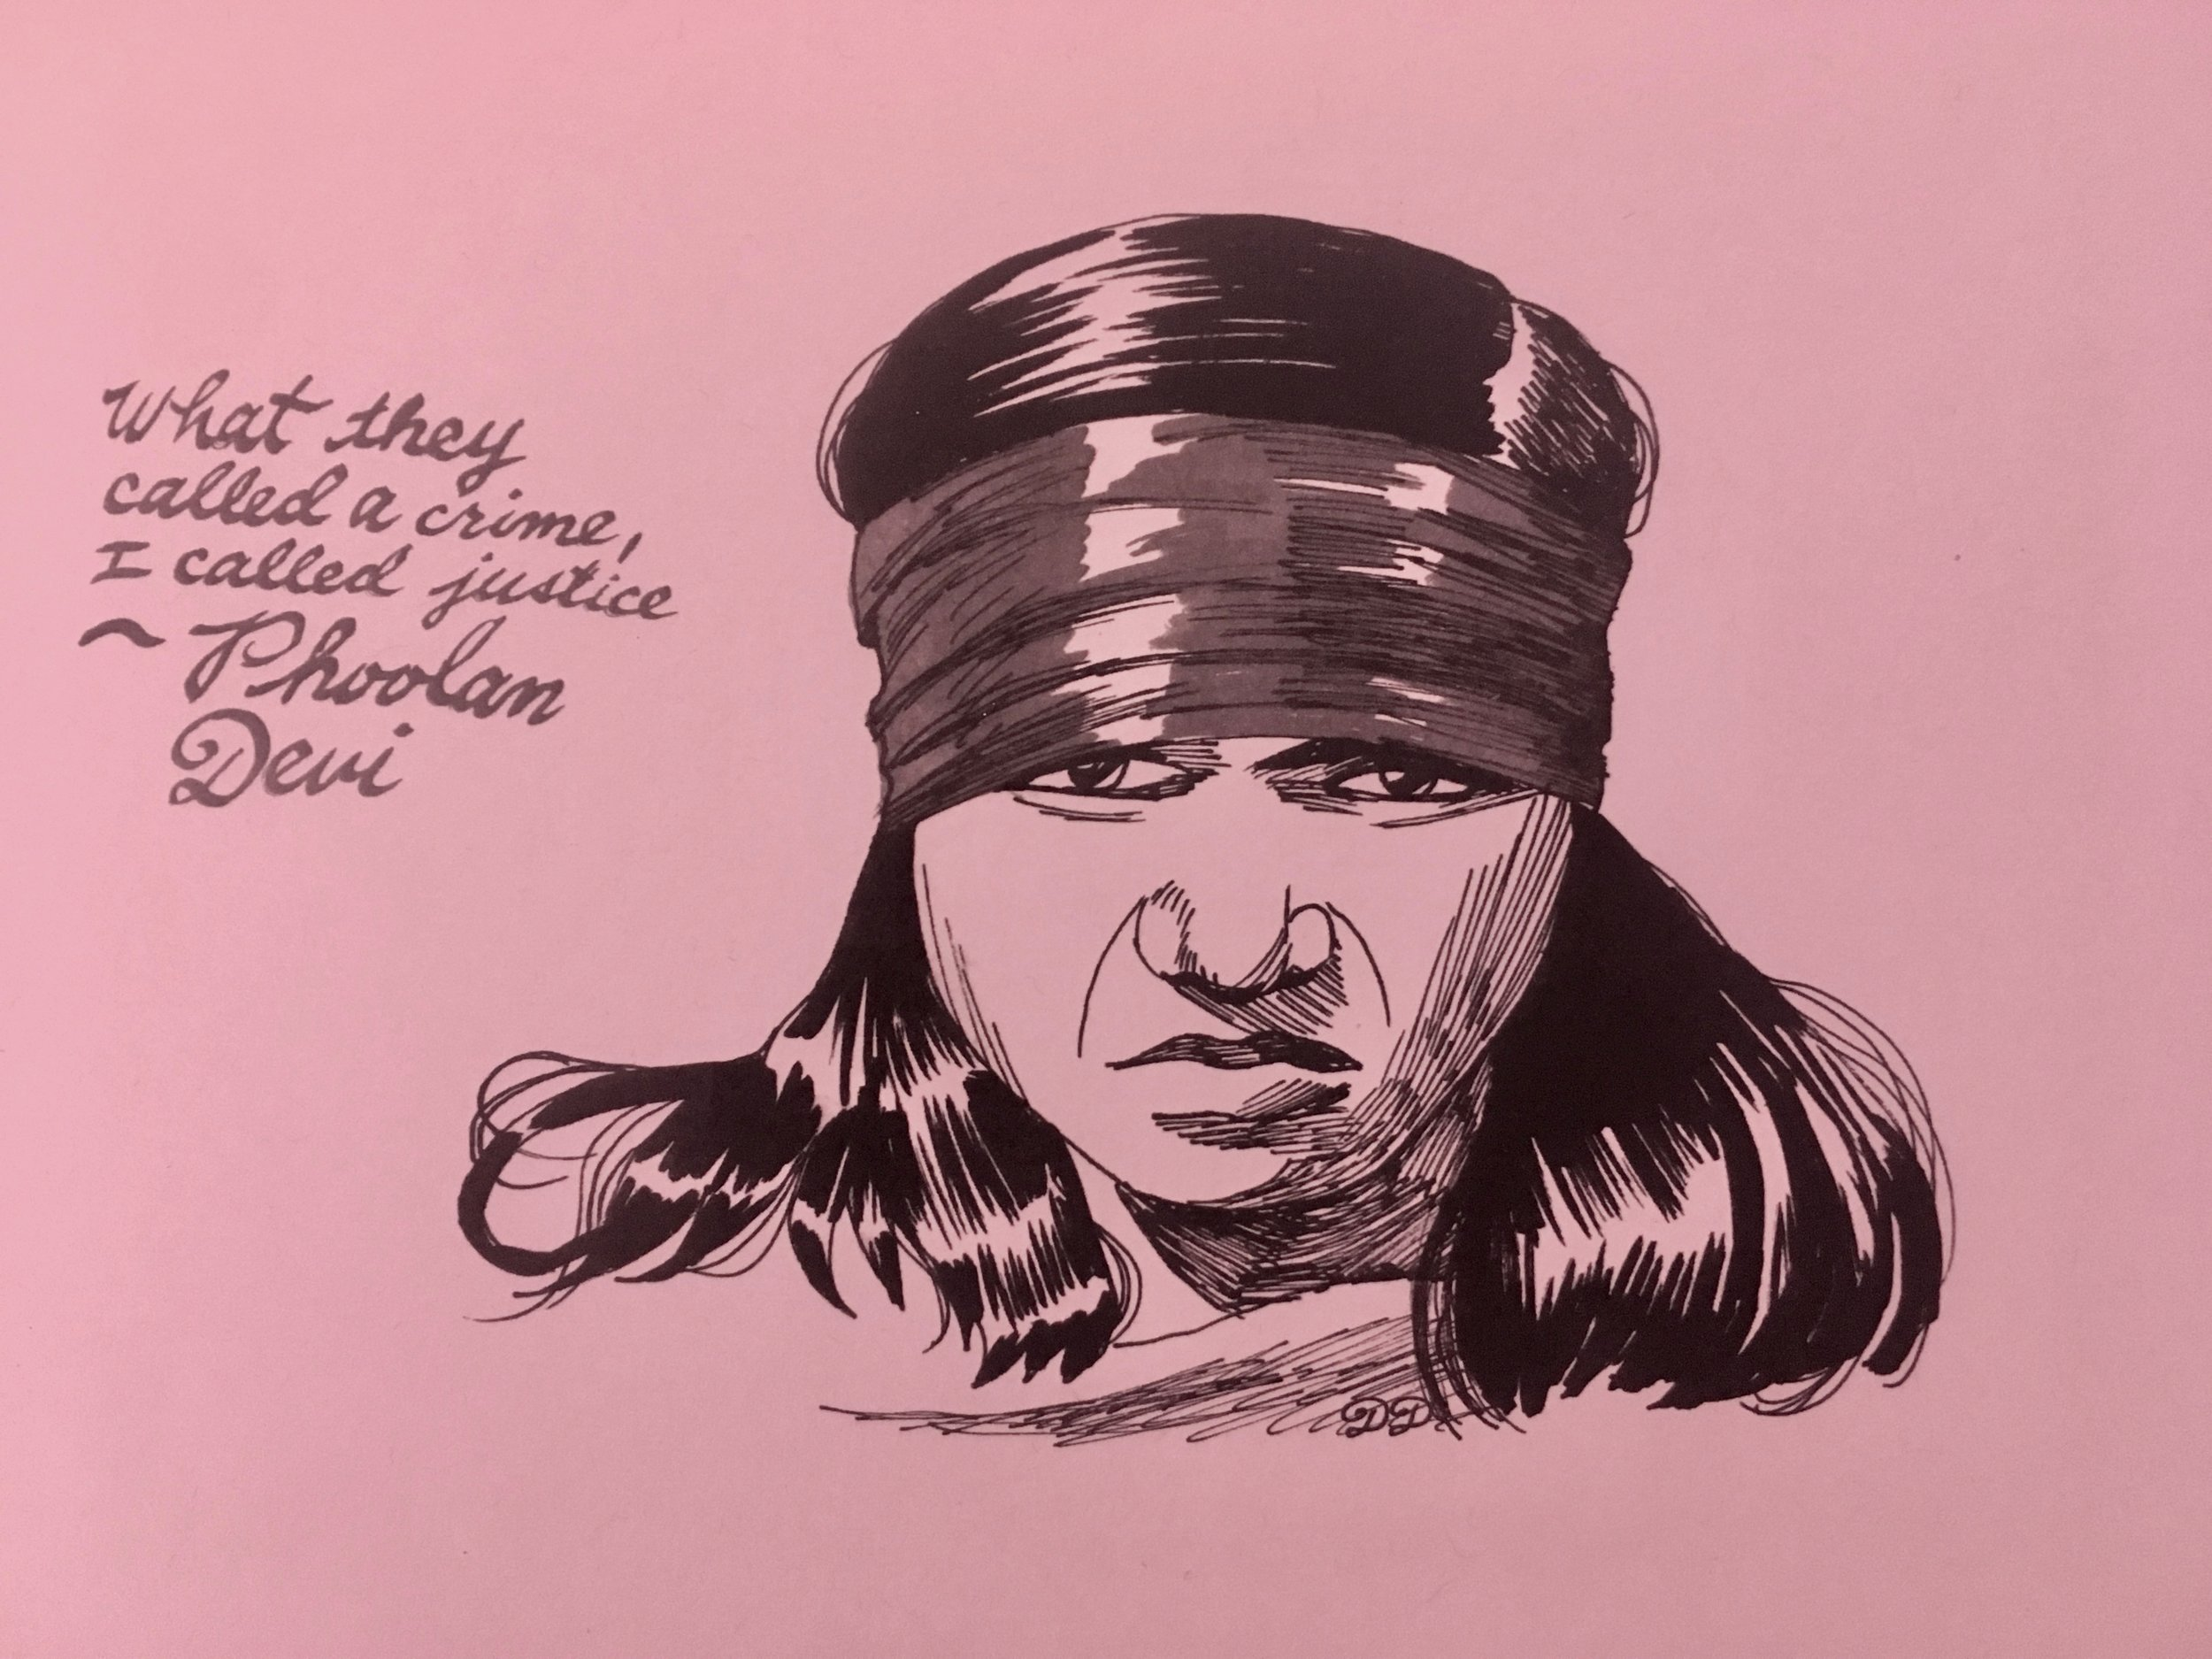 "Phoolan Devi #2 - A print of the northern Indian bandit queen, Phoolan Devi, the subject of Criminal Broads episode 11. 5.5"" x 8.5"". $8 + $2 shipping. Buy on Etsy, or send $10 and your shipping address via Venmo (@tori-telfer), or Paypal/ChaseQuickpay (toritelfer@gmail.com)."